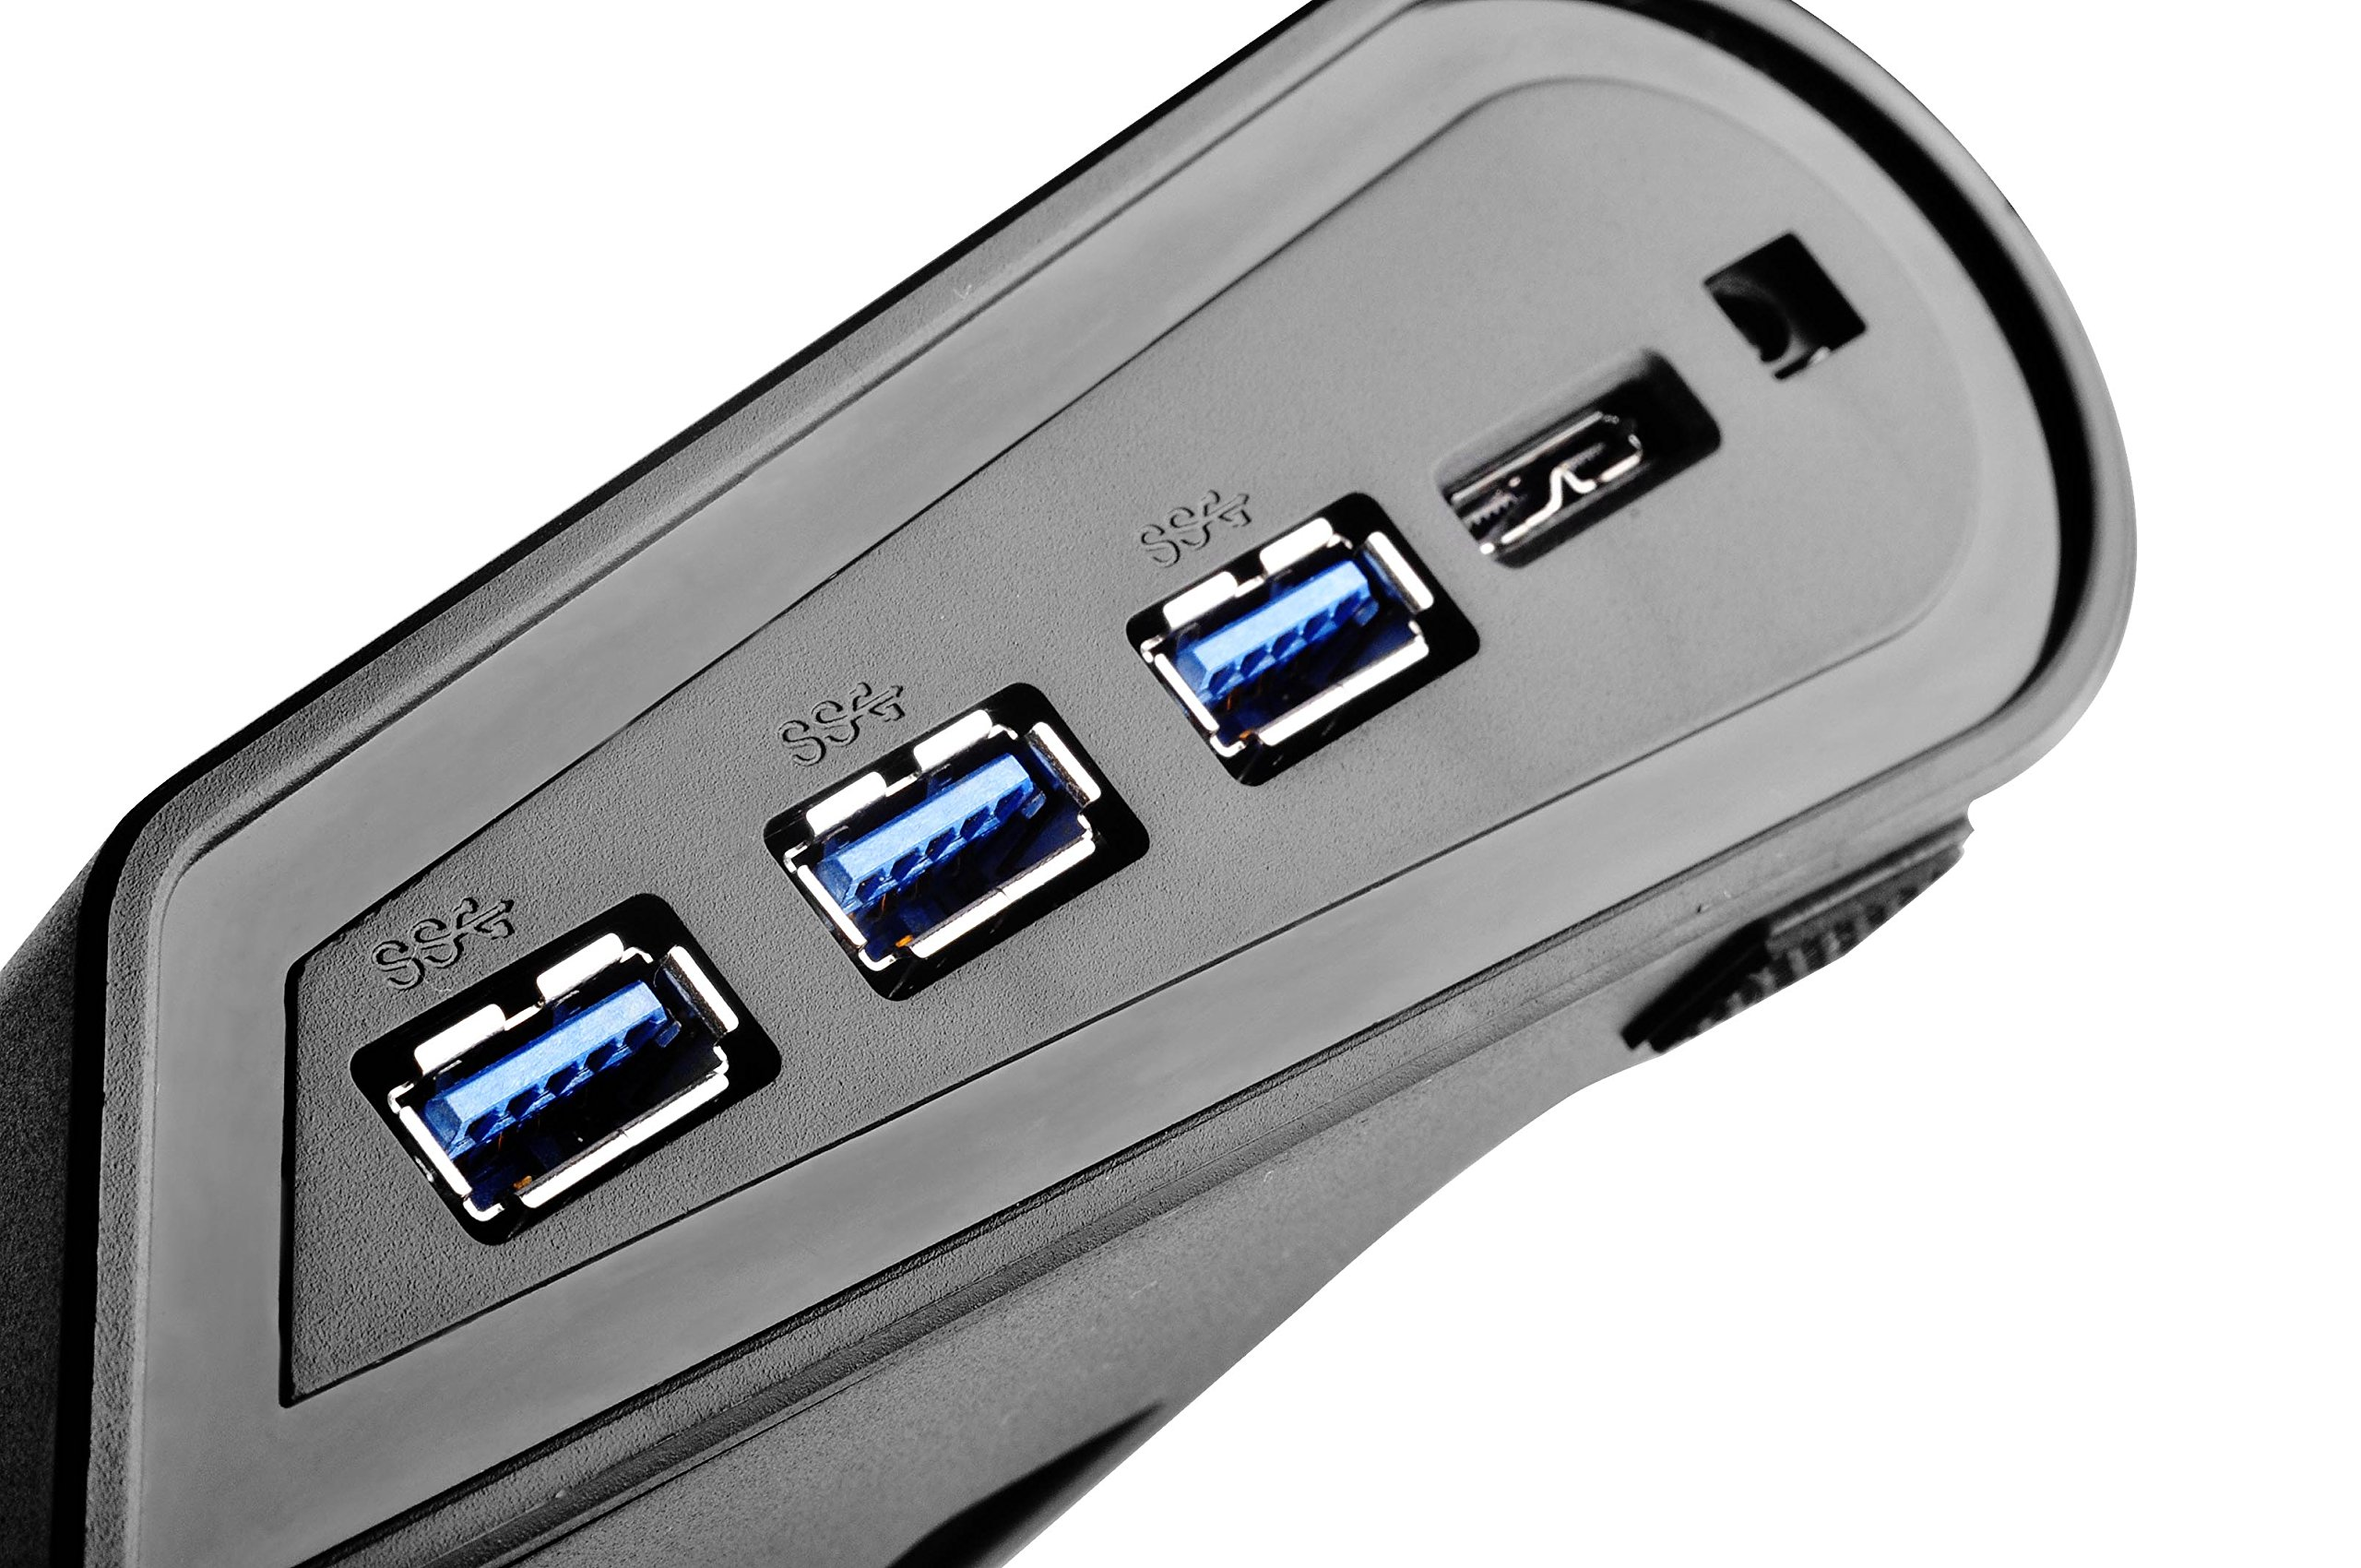 Silverstone Tek Multifunctional Laptop Cooler with Crossflow Fan, Networking Capabilities and 3x SuperSpeed USB 3.0 Ports (NB05B) by SilverStone Technology (Image #3)